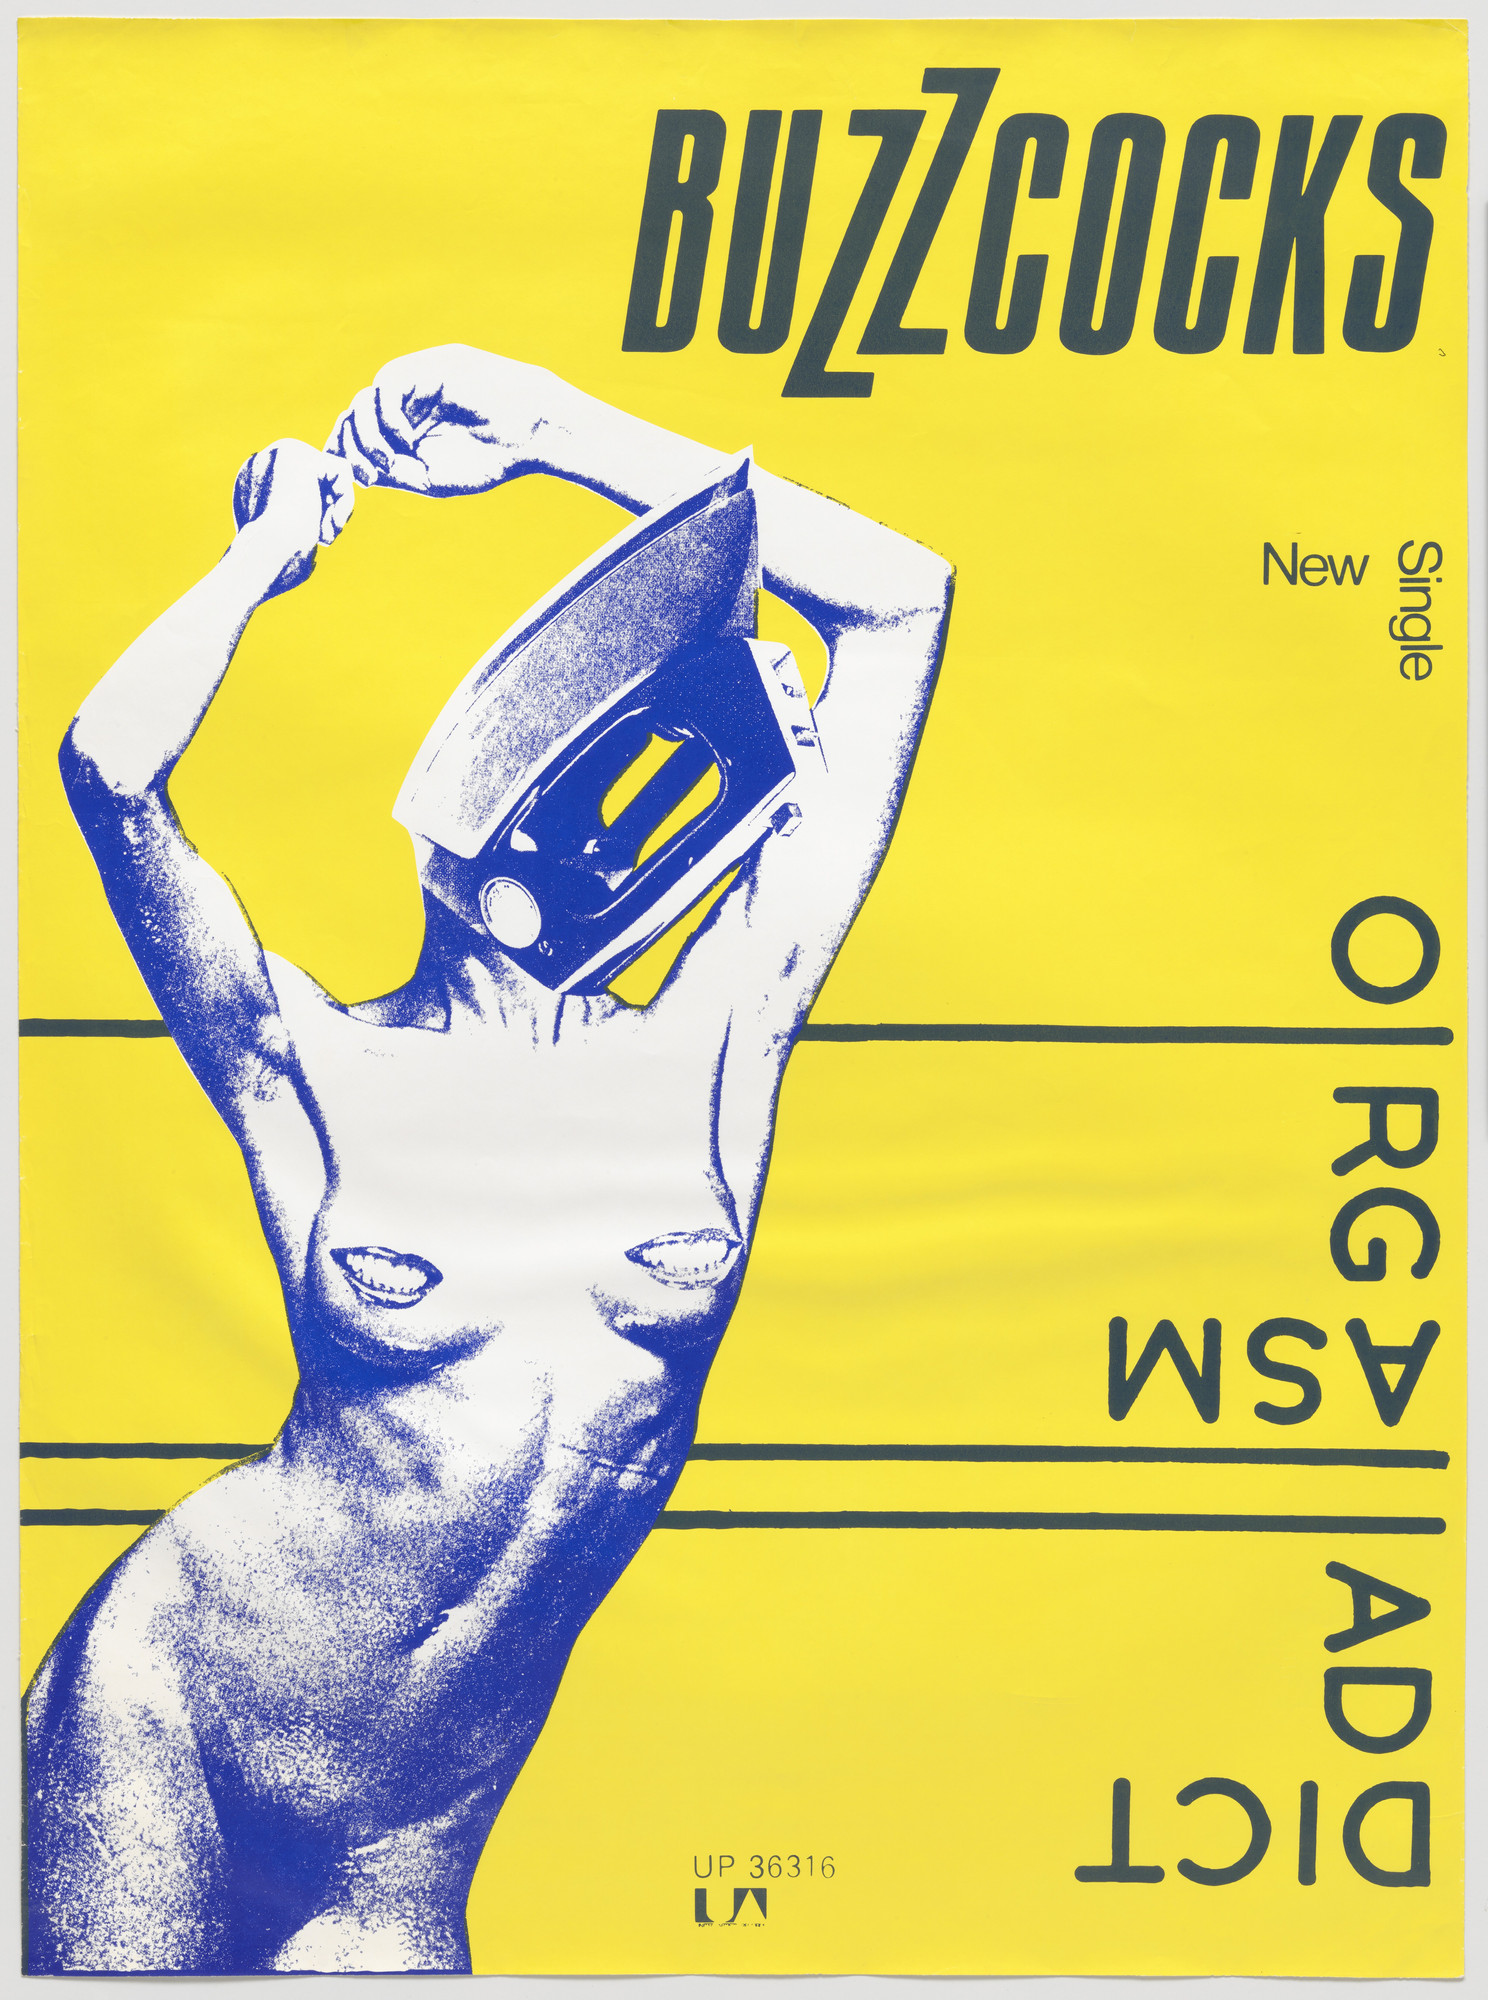 Linder [Linda Sterling], Malcolm Garrett. Buzzcocks, Orgasm Addict (Poster for single distributed by United Artist Records, London). 1977